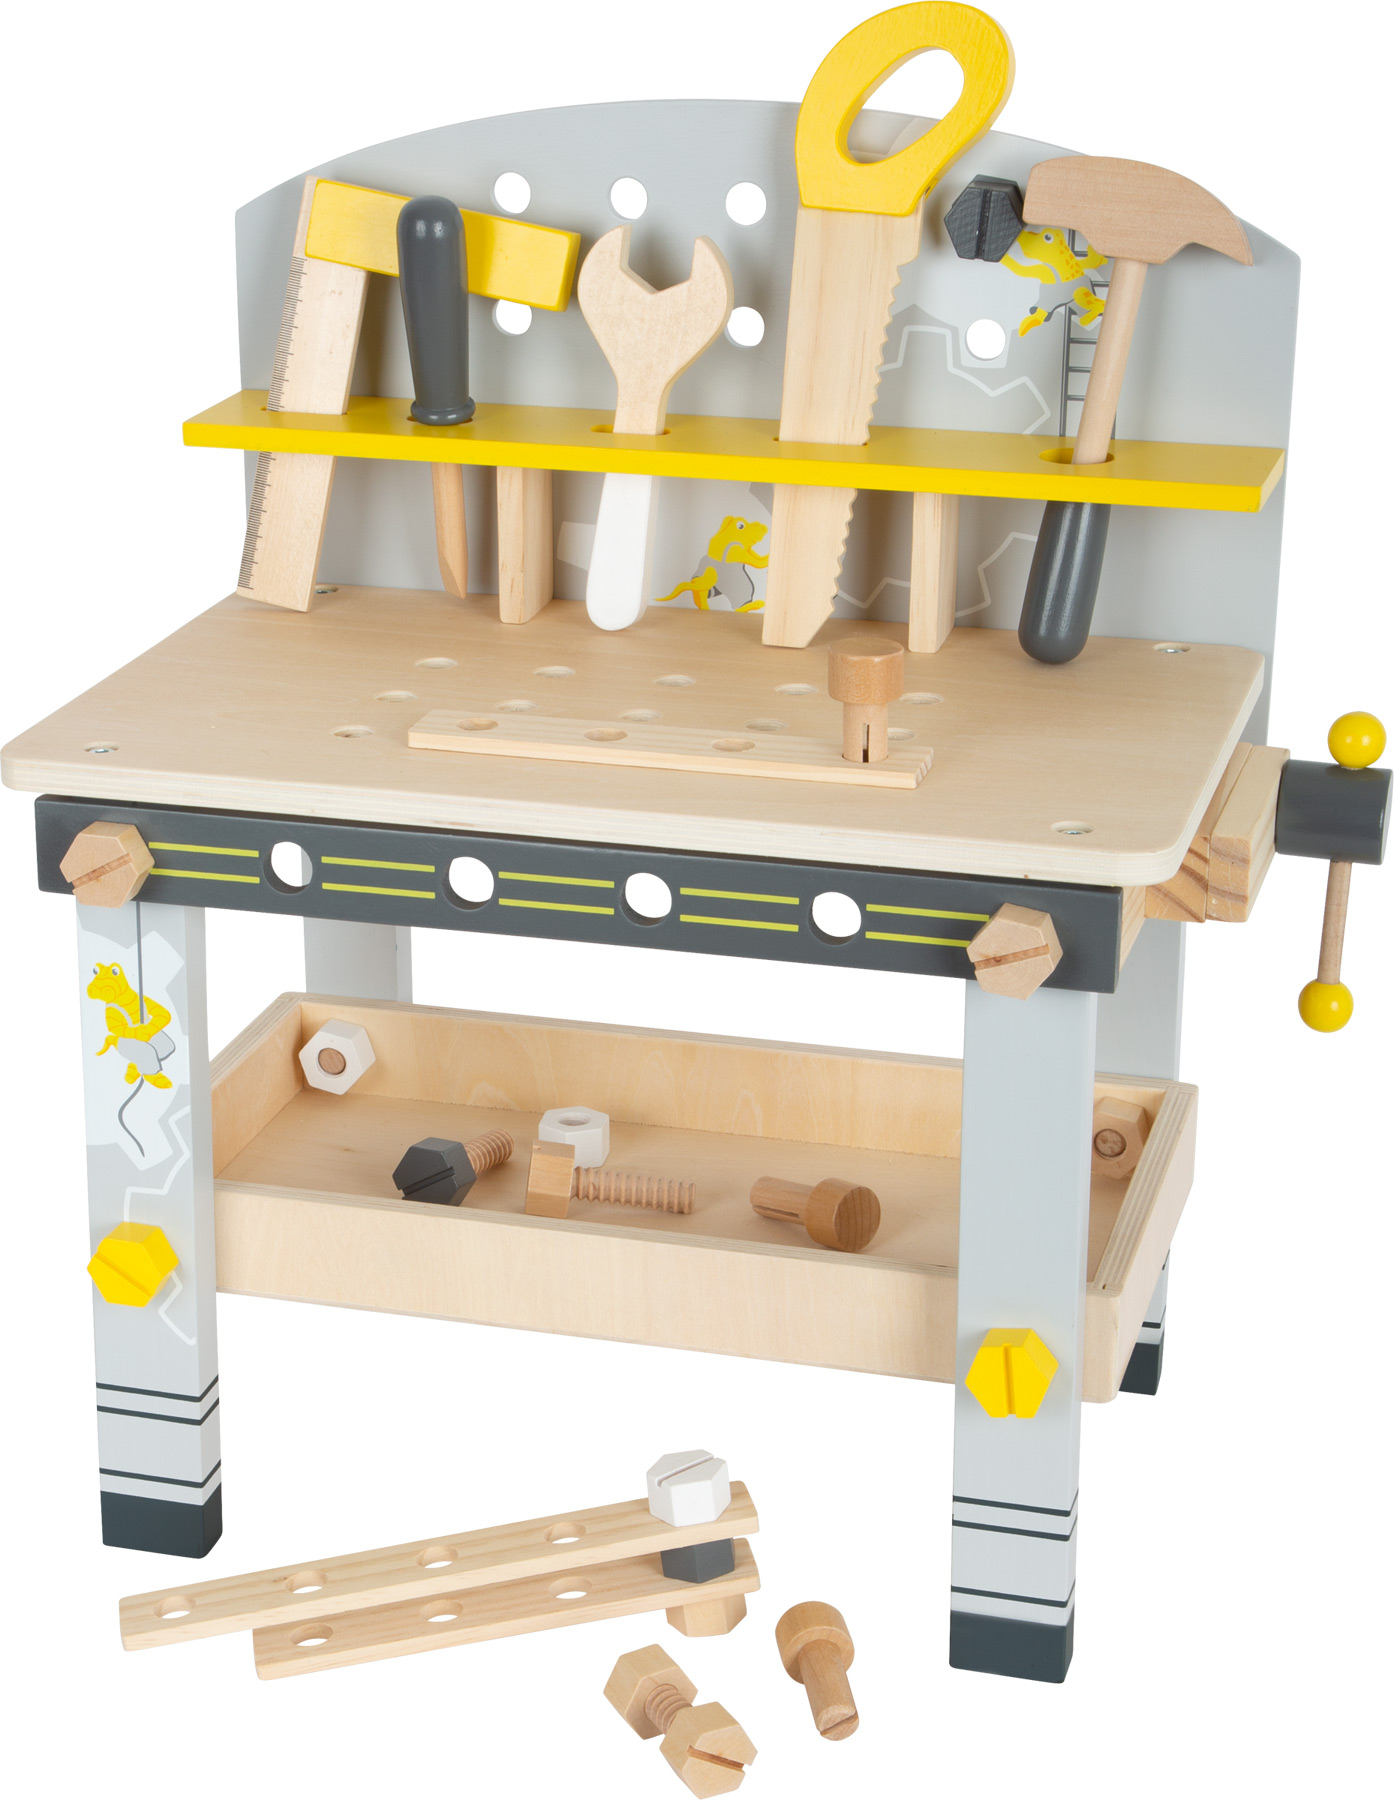 Workbench compact